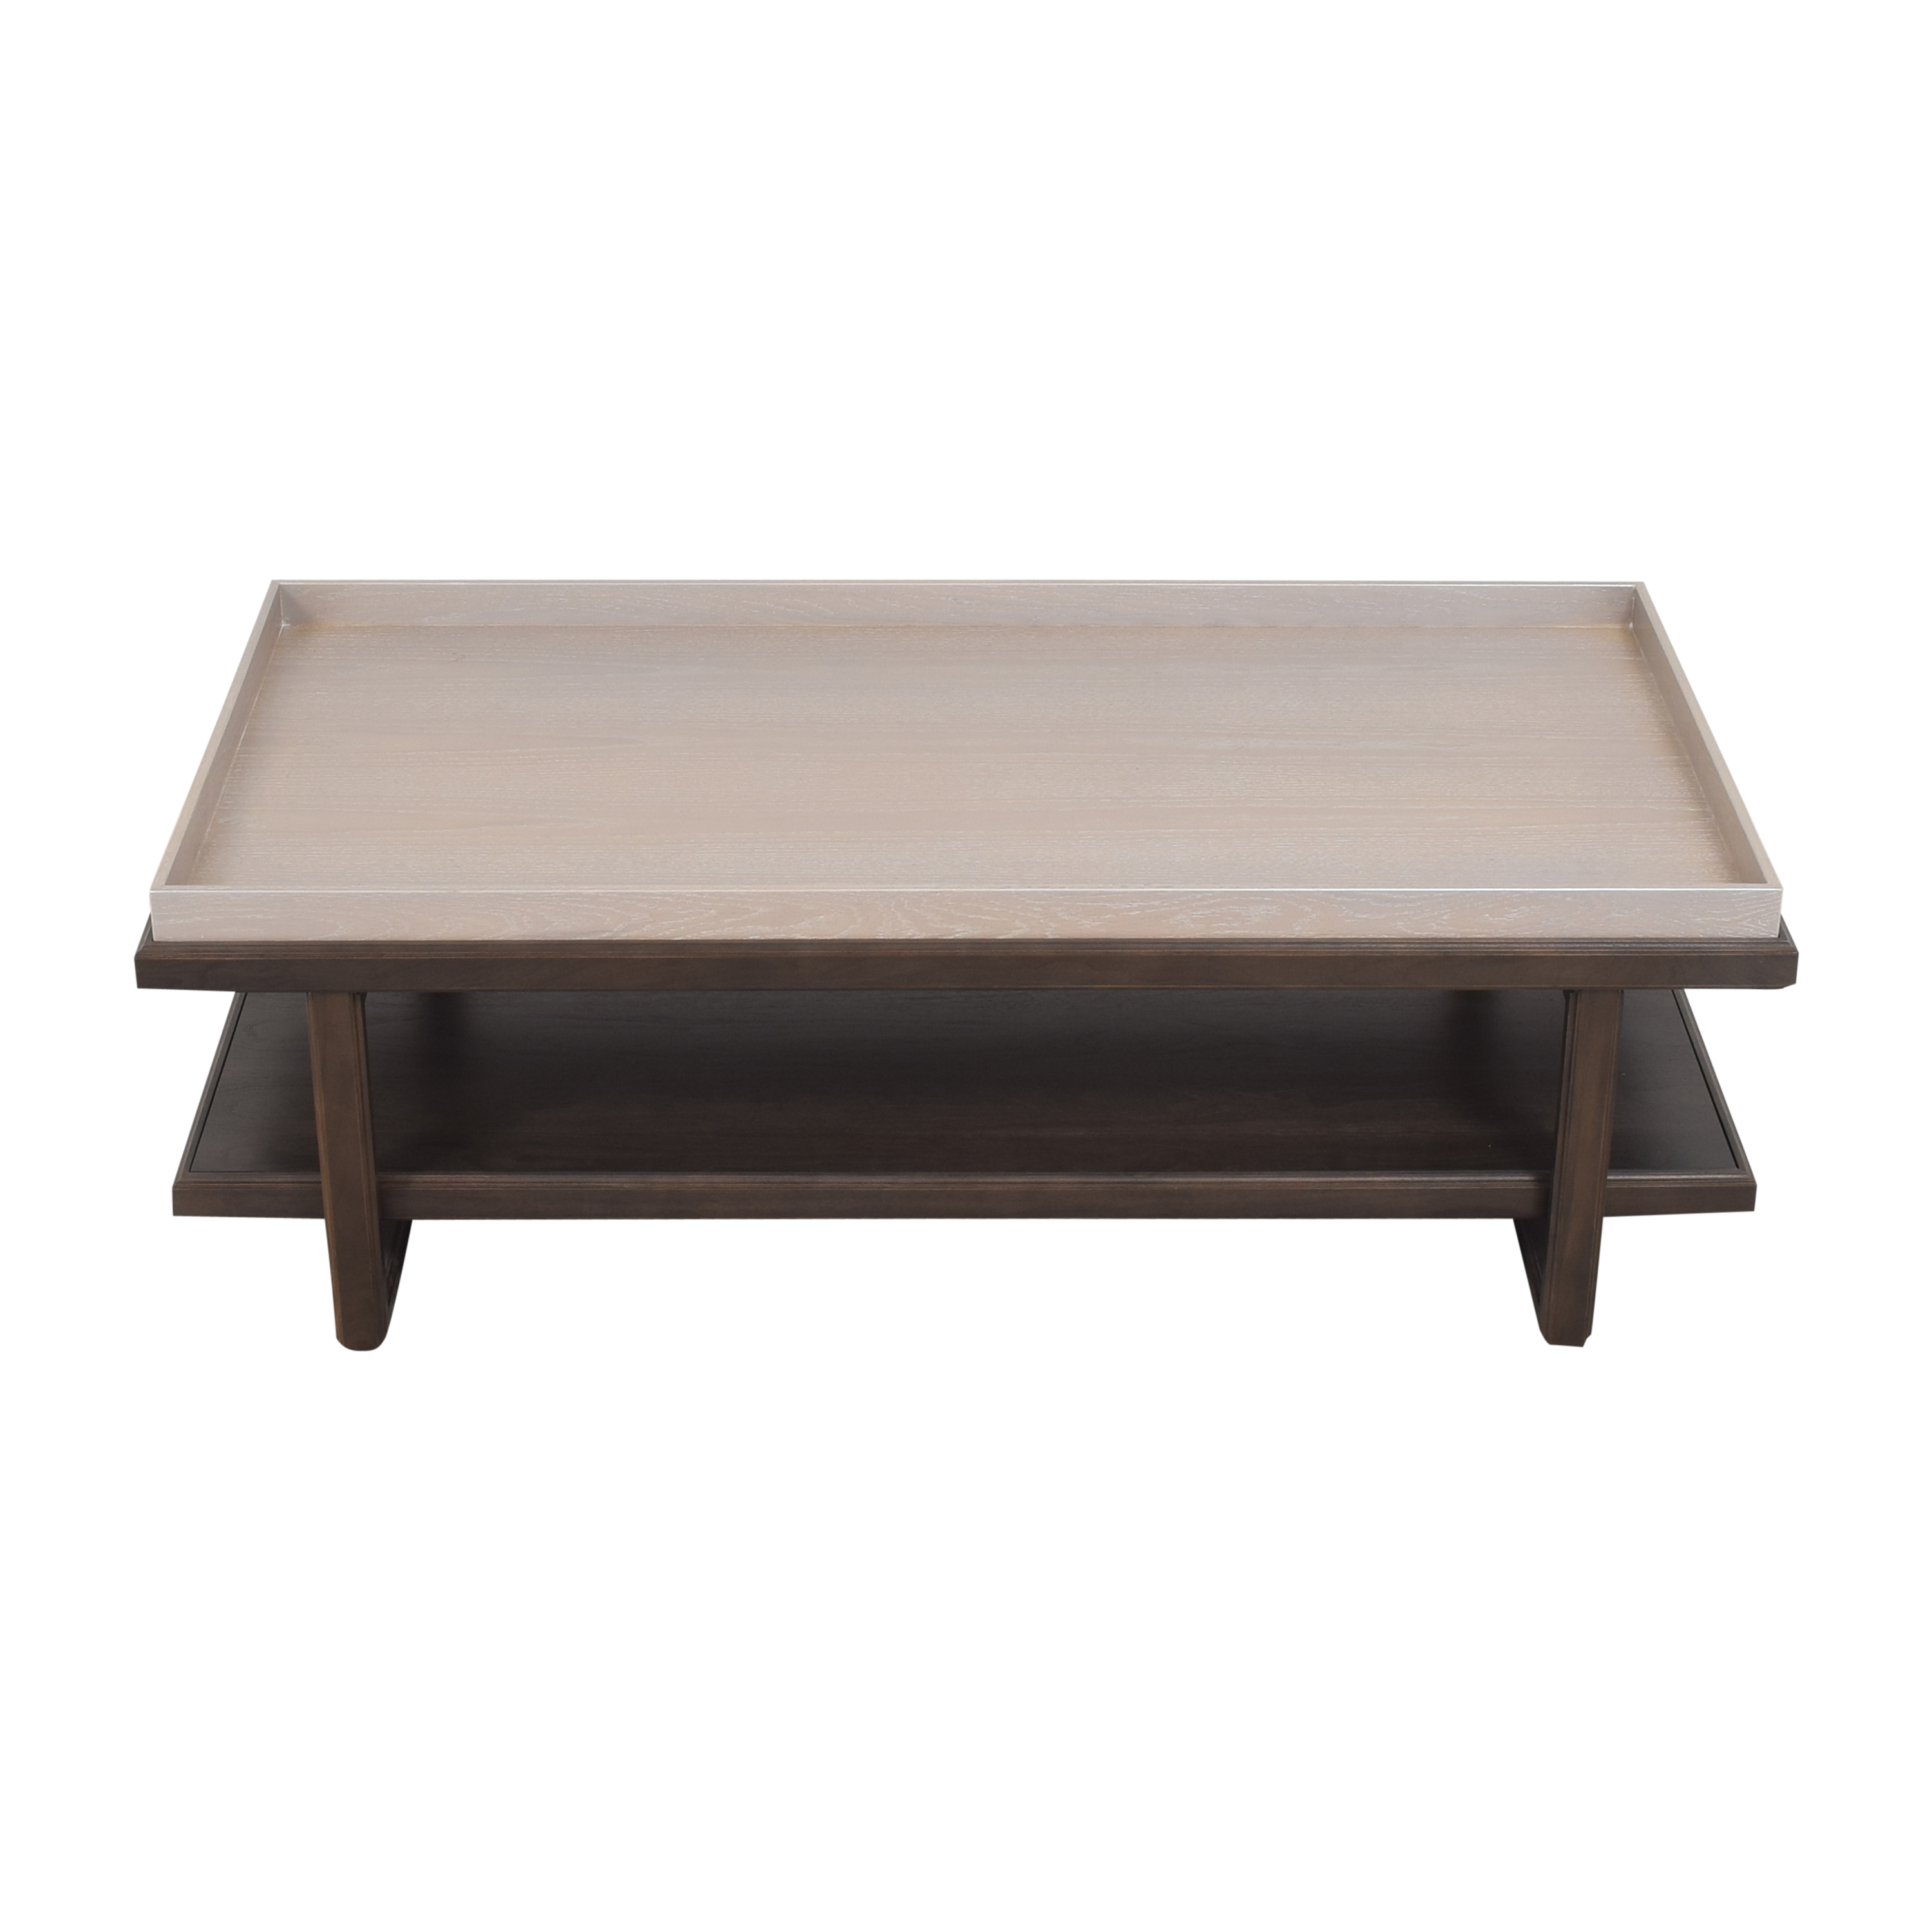 The New Traditionalists The New Traditionalists Tray Top Coffee Table pa